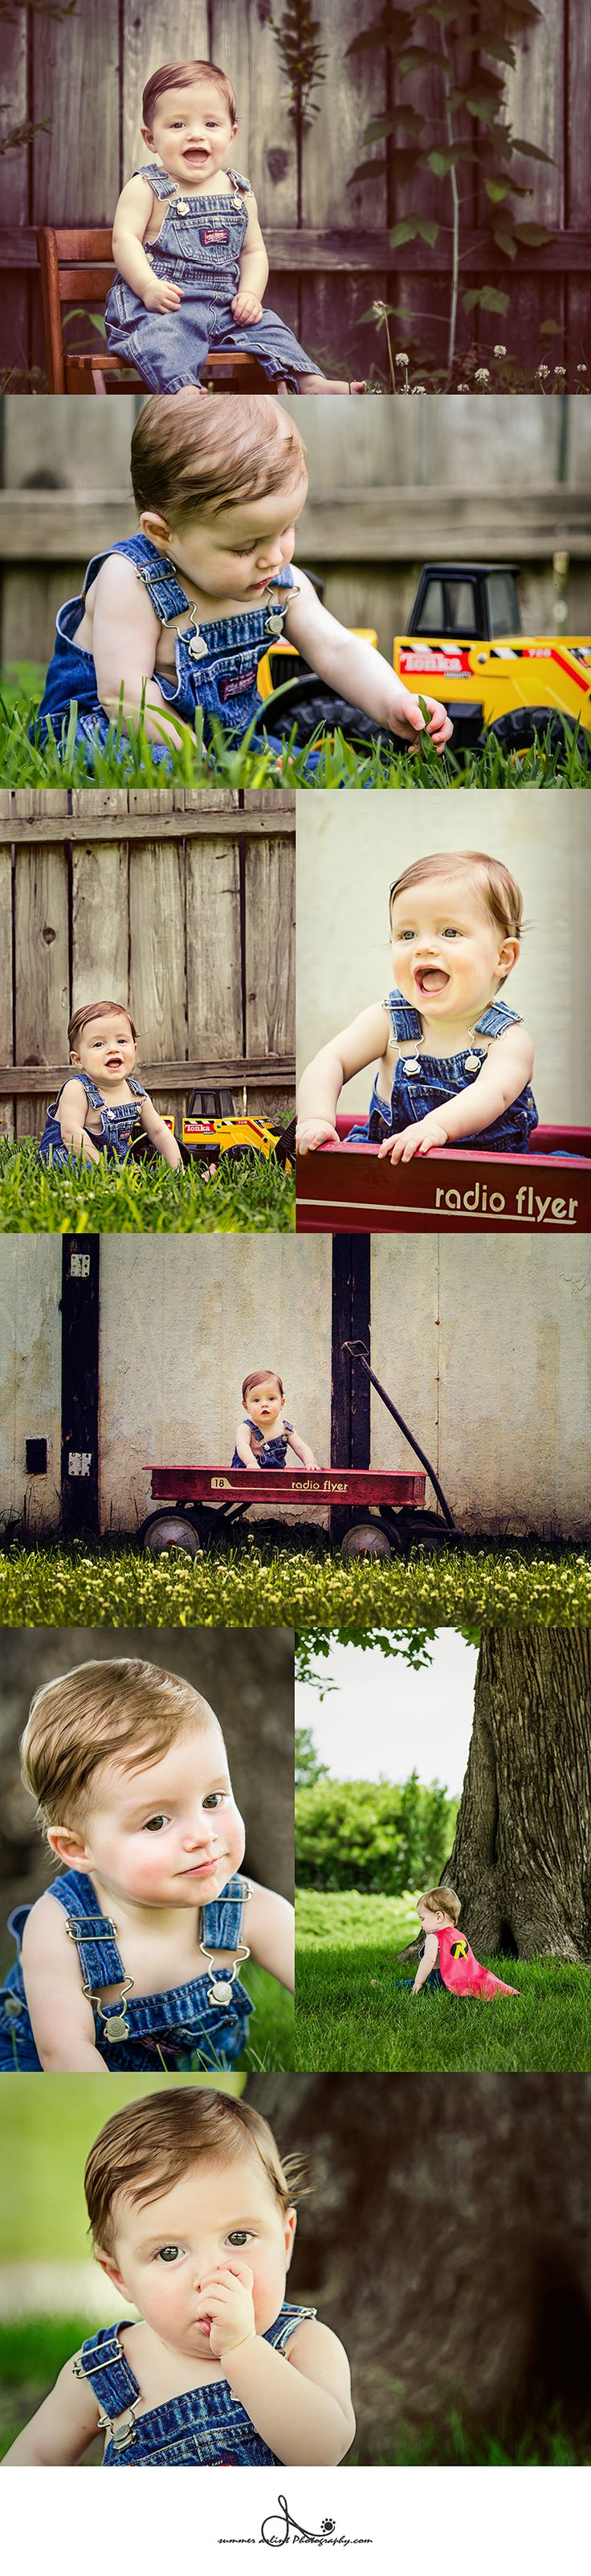 9 month old boy pictures. Little baby boy photo shoot. Tonka Trucks and Radio Flyer wagons. Photographs taken in Blue Springs, MO by Summer Arlint Photography.